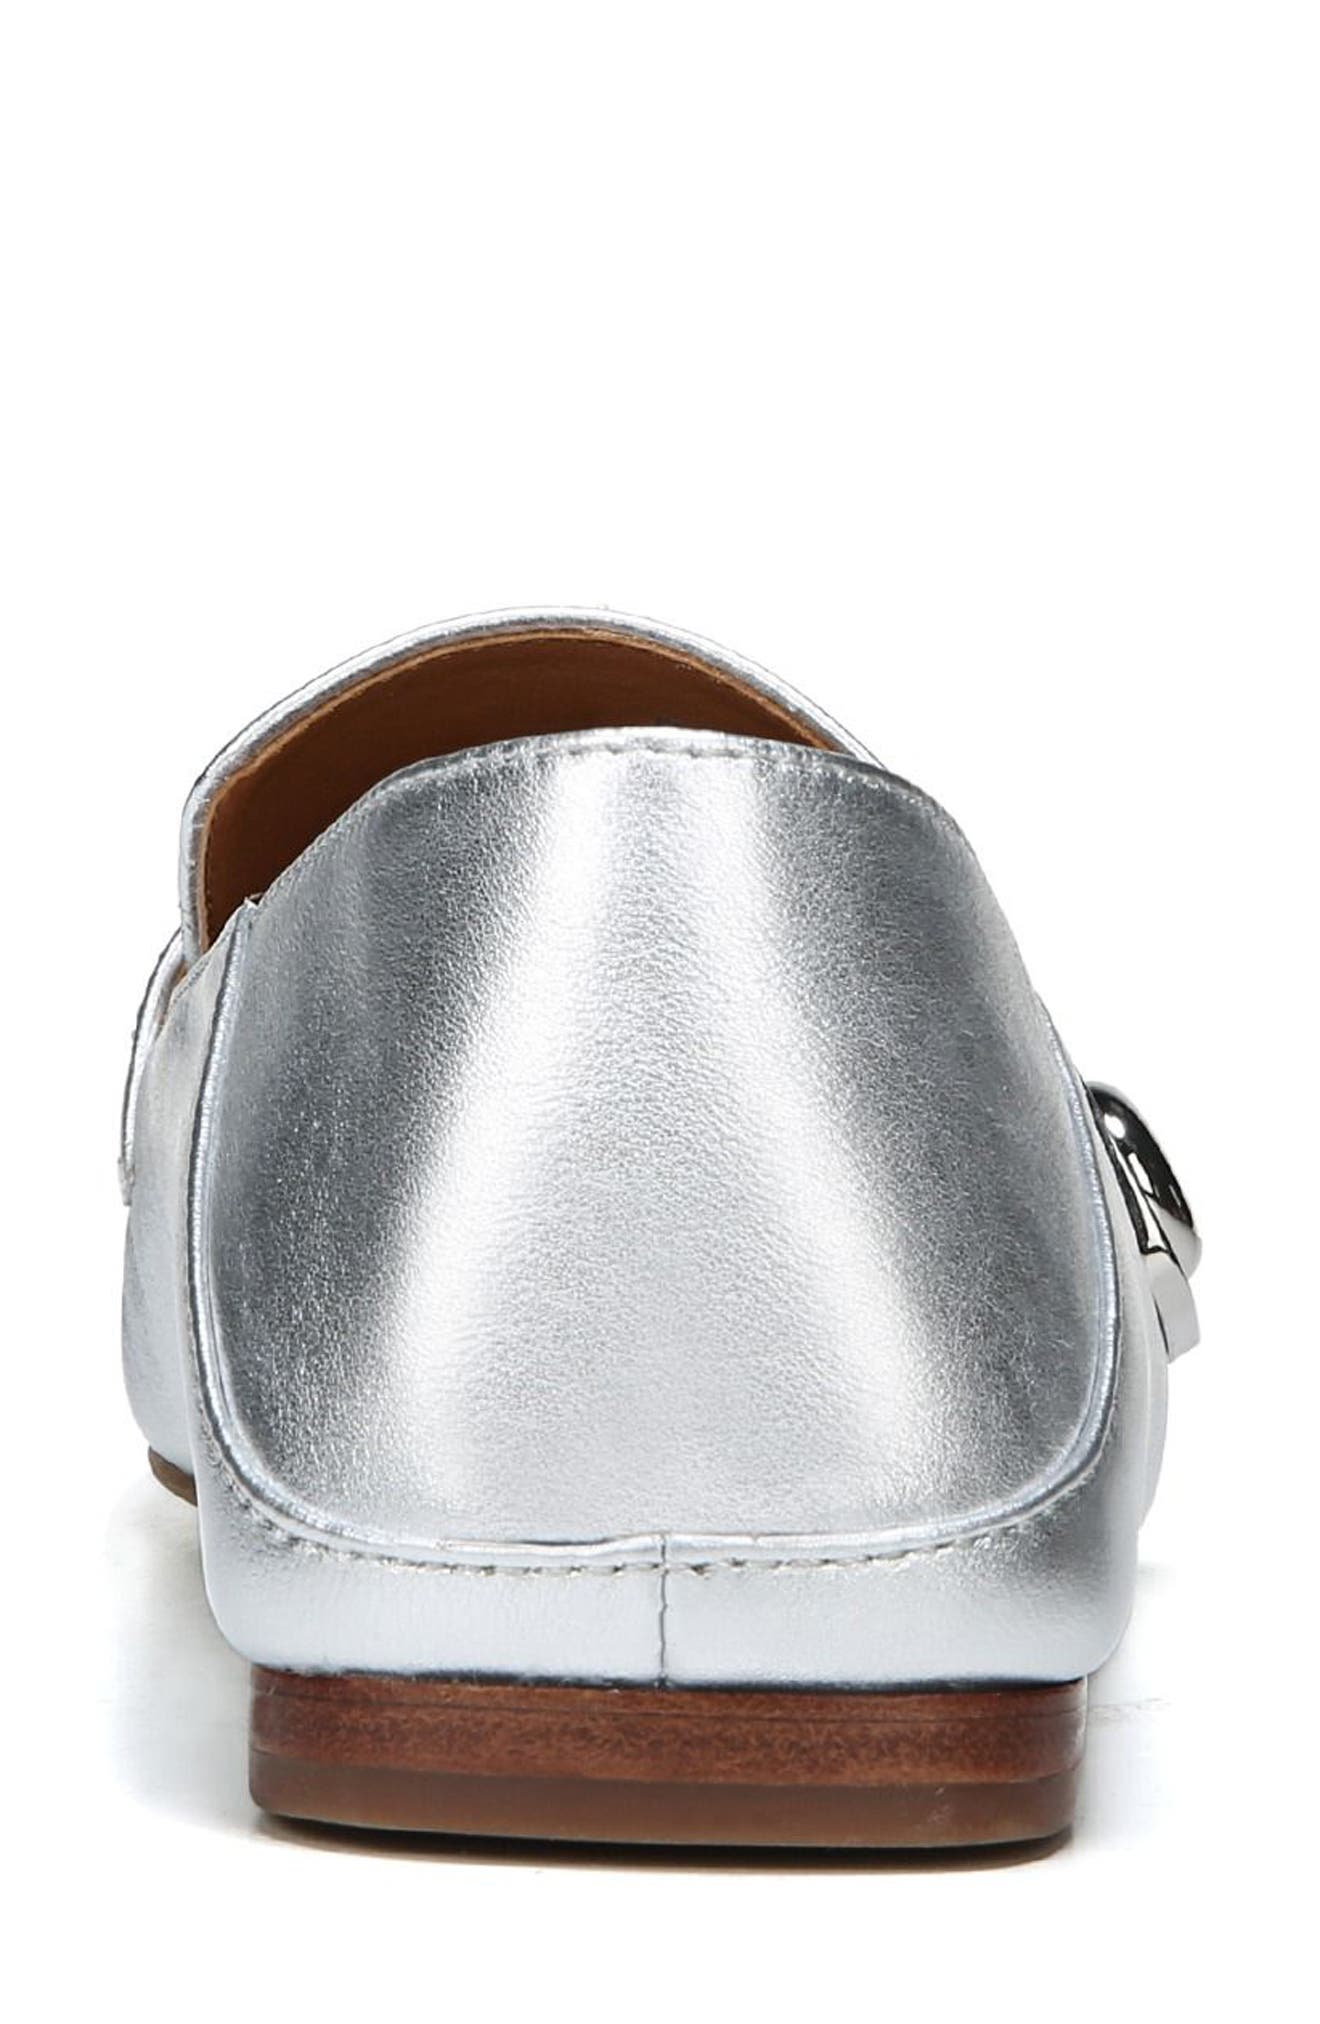 Valeres Loafer,                             Alternate thumbnail 7, color,                             Silver Metallic Leather